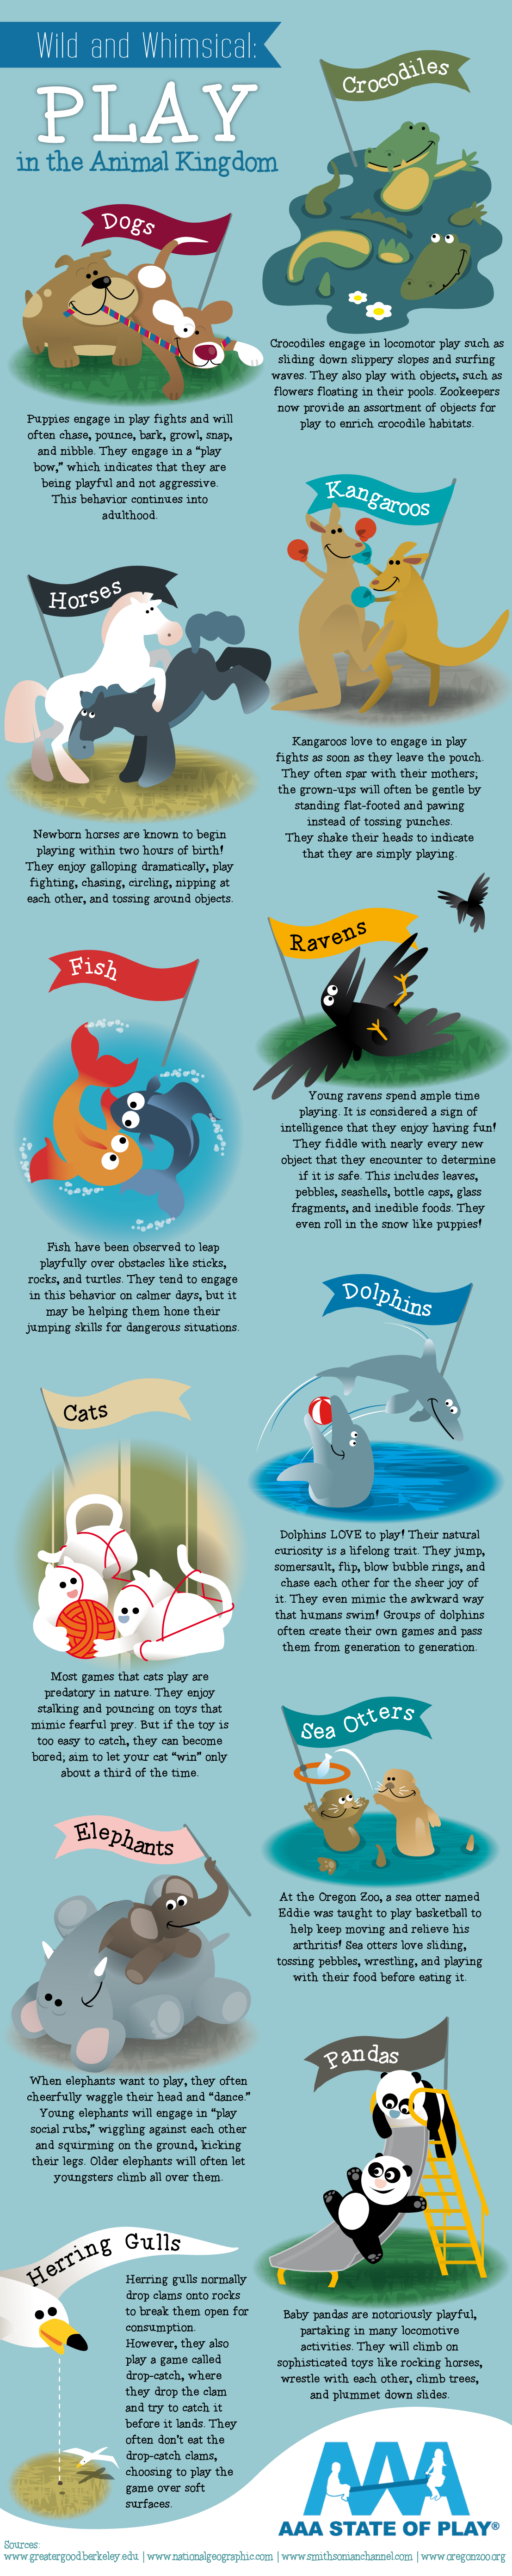 Wild and Whimsical: Play in the Animal Kingdom #infographic